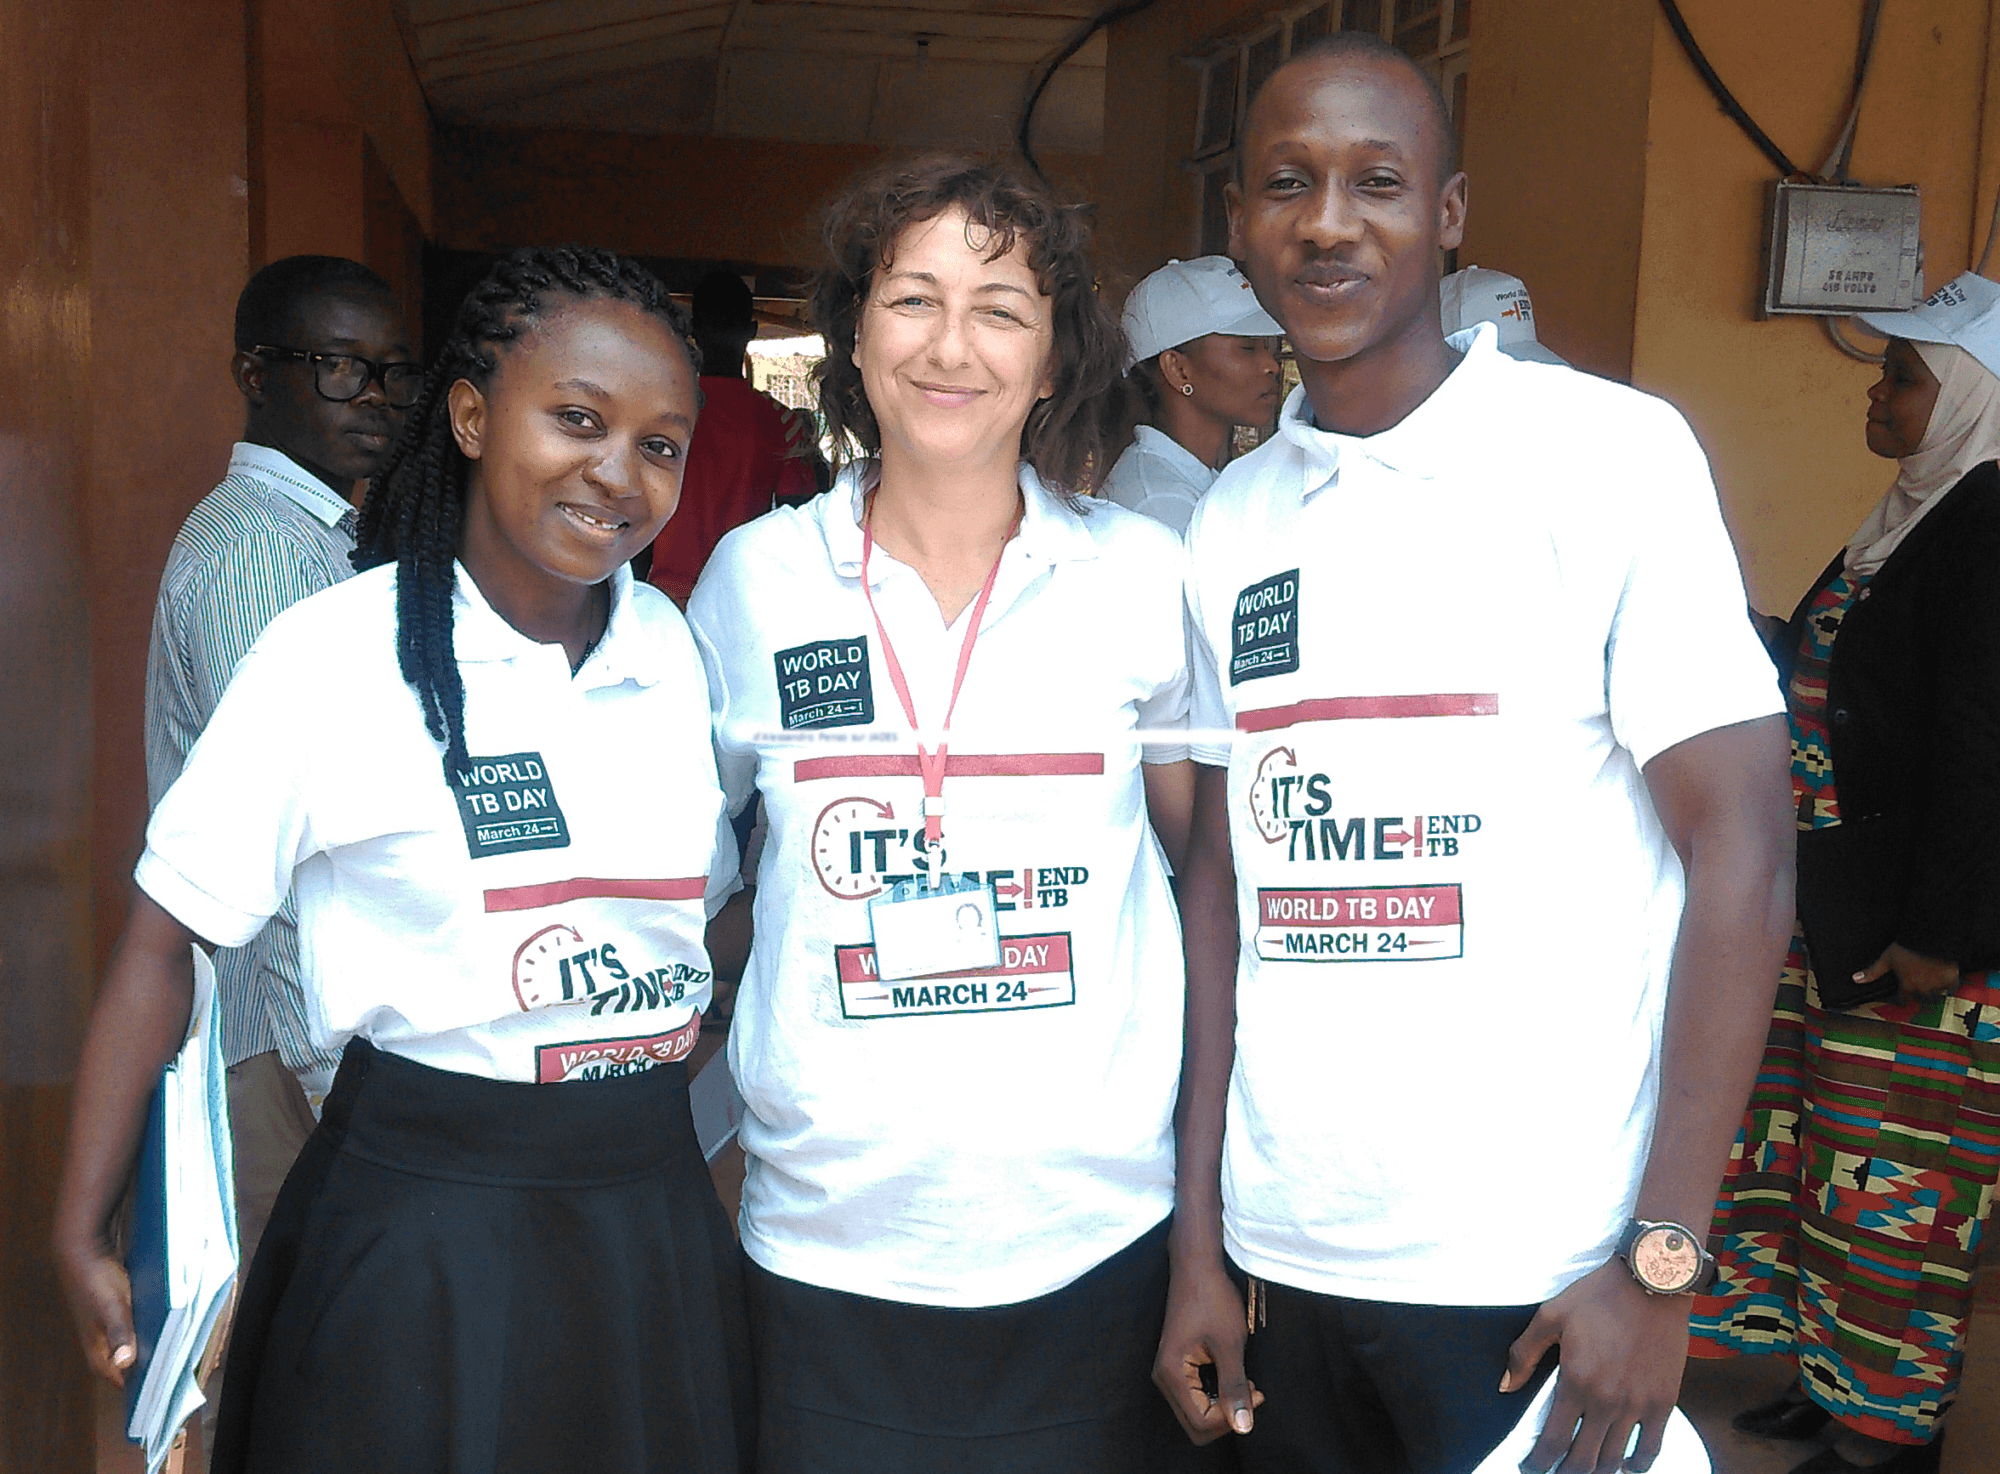 World TB day 2019: Solthis Sierra Leone